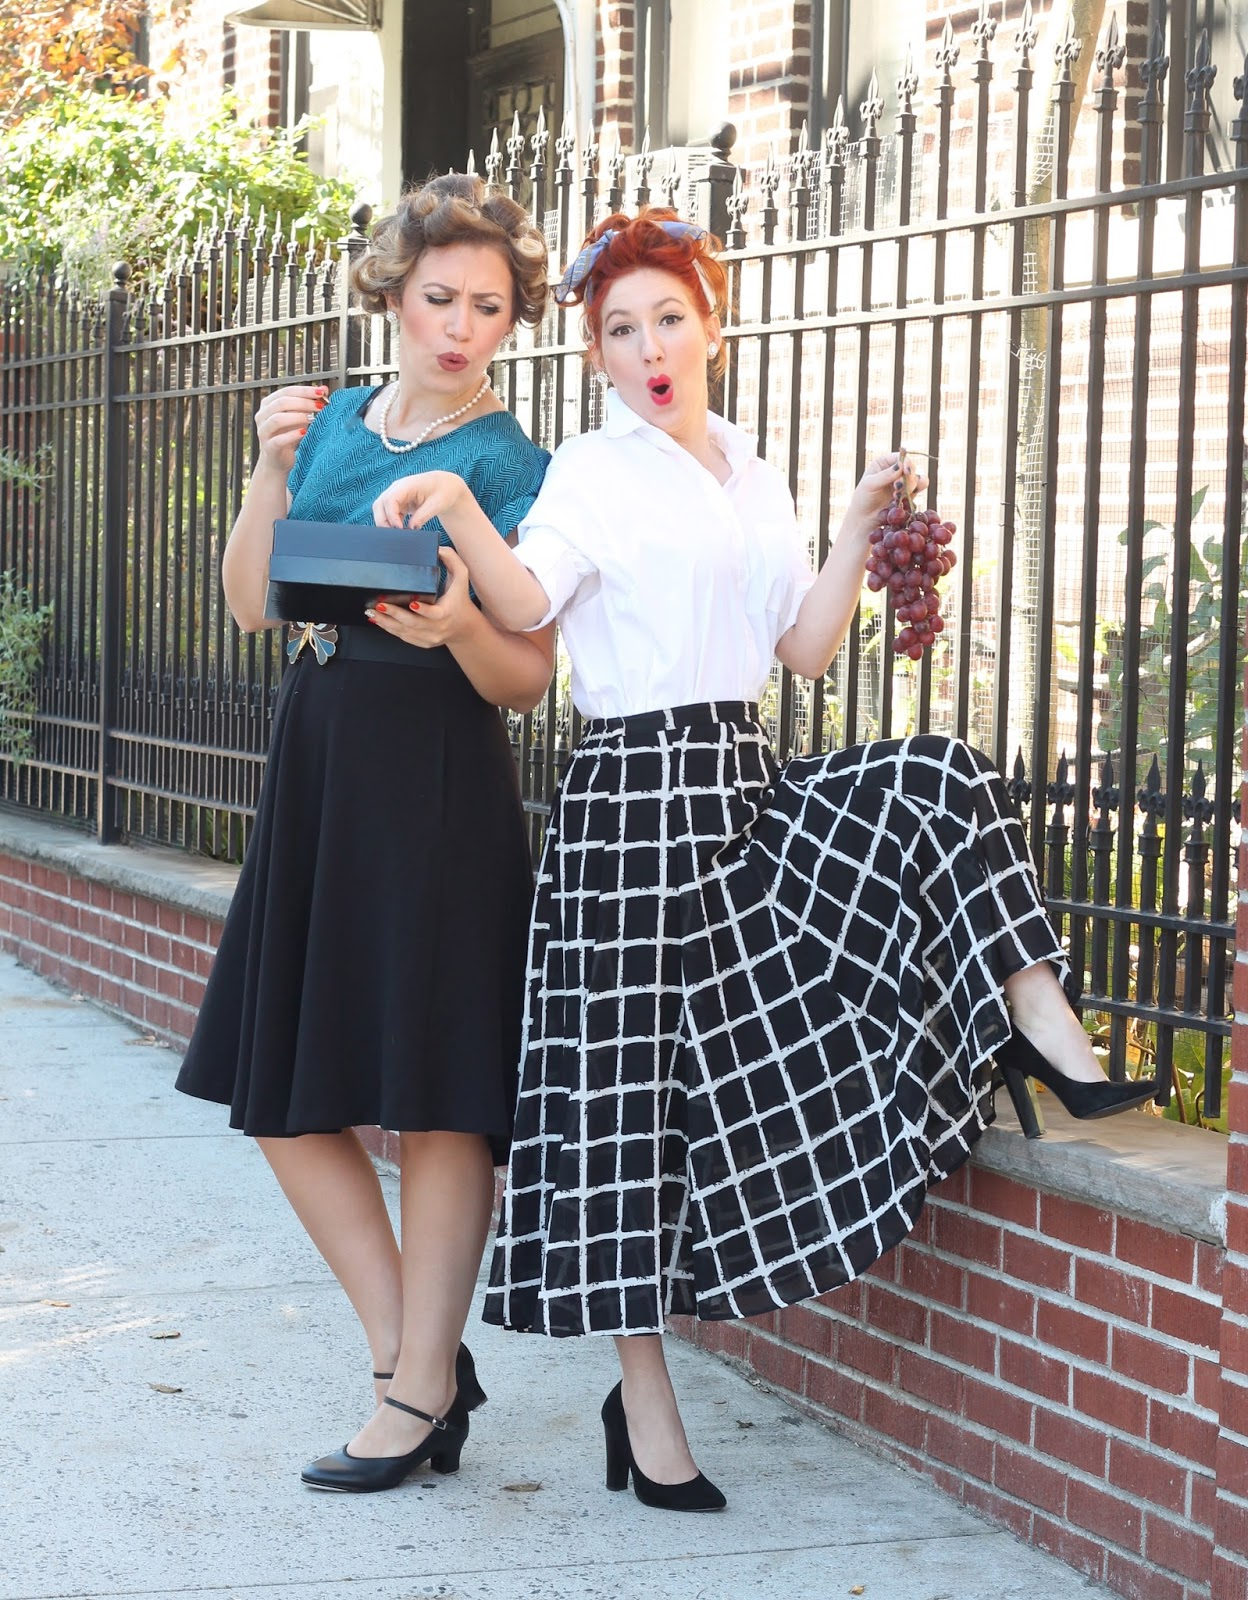 3 Costume Ideas for You and Your Bestie From Your Closet